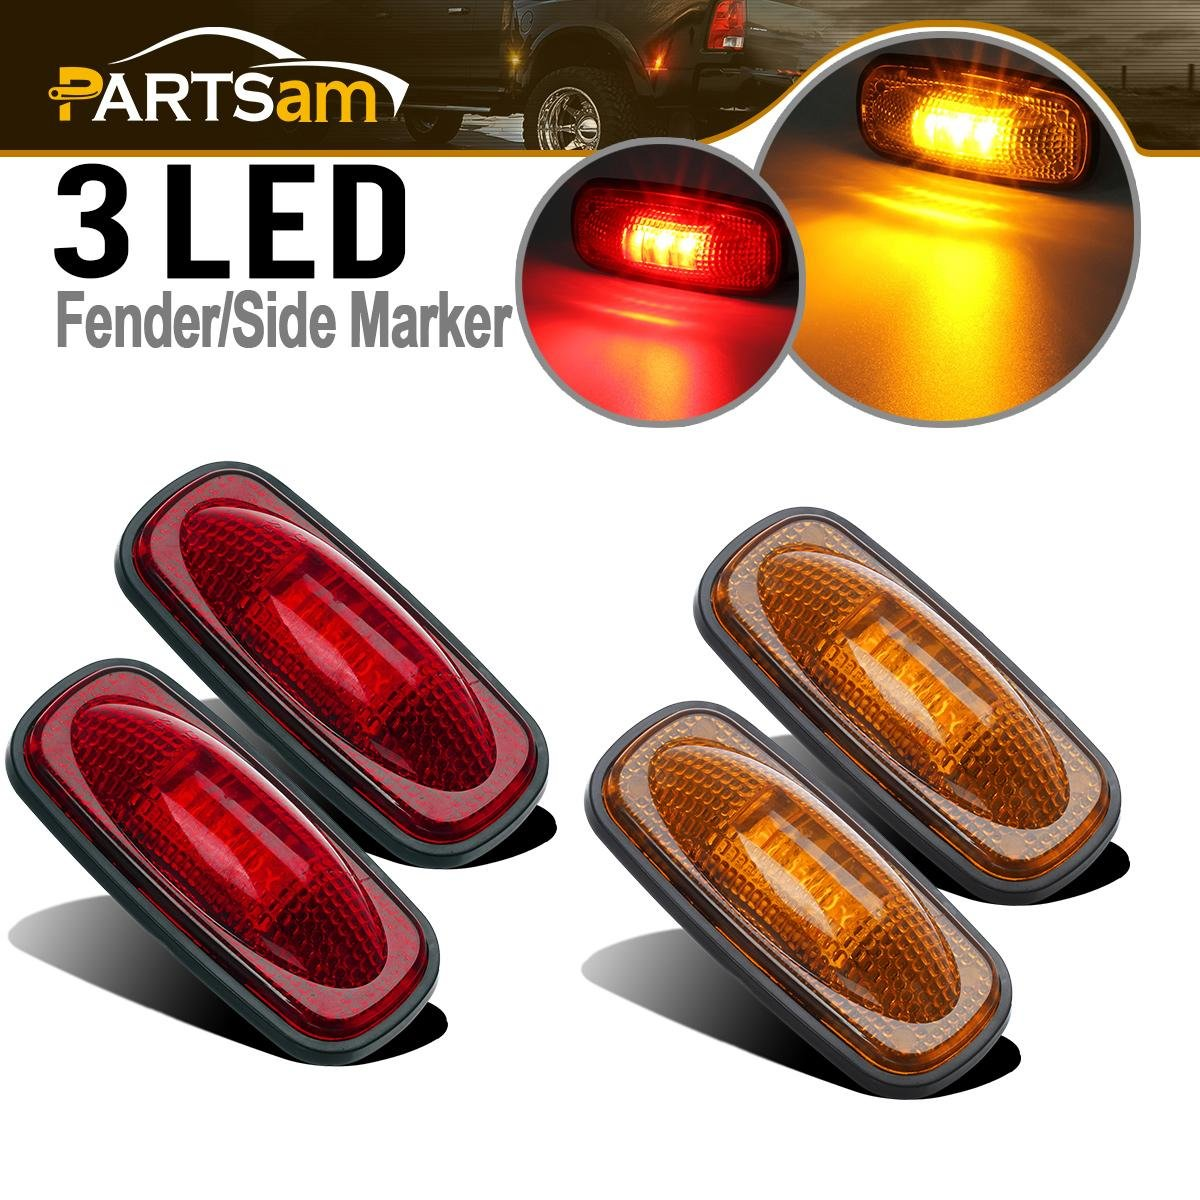 Partsam For 2003-2009 DODGE RAM 3500 LED Side Fender Marker Light 2x Amber & 2x Red Smoked Black Lens